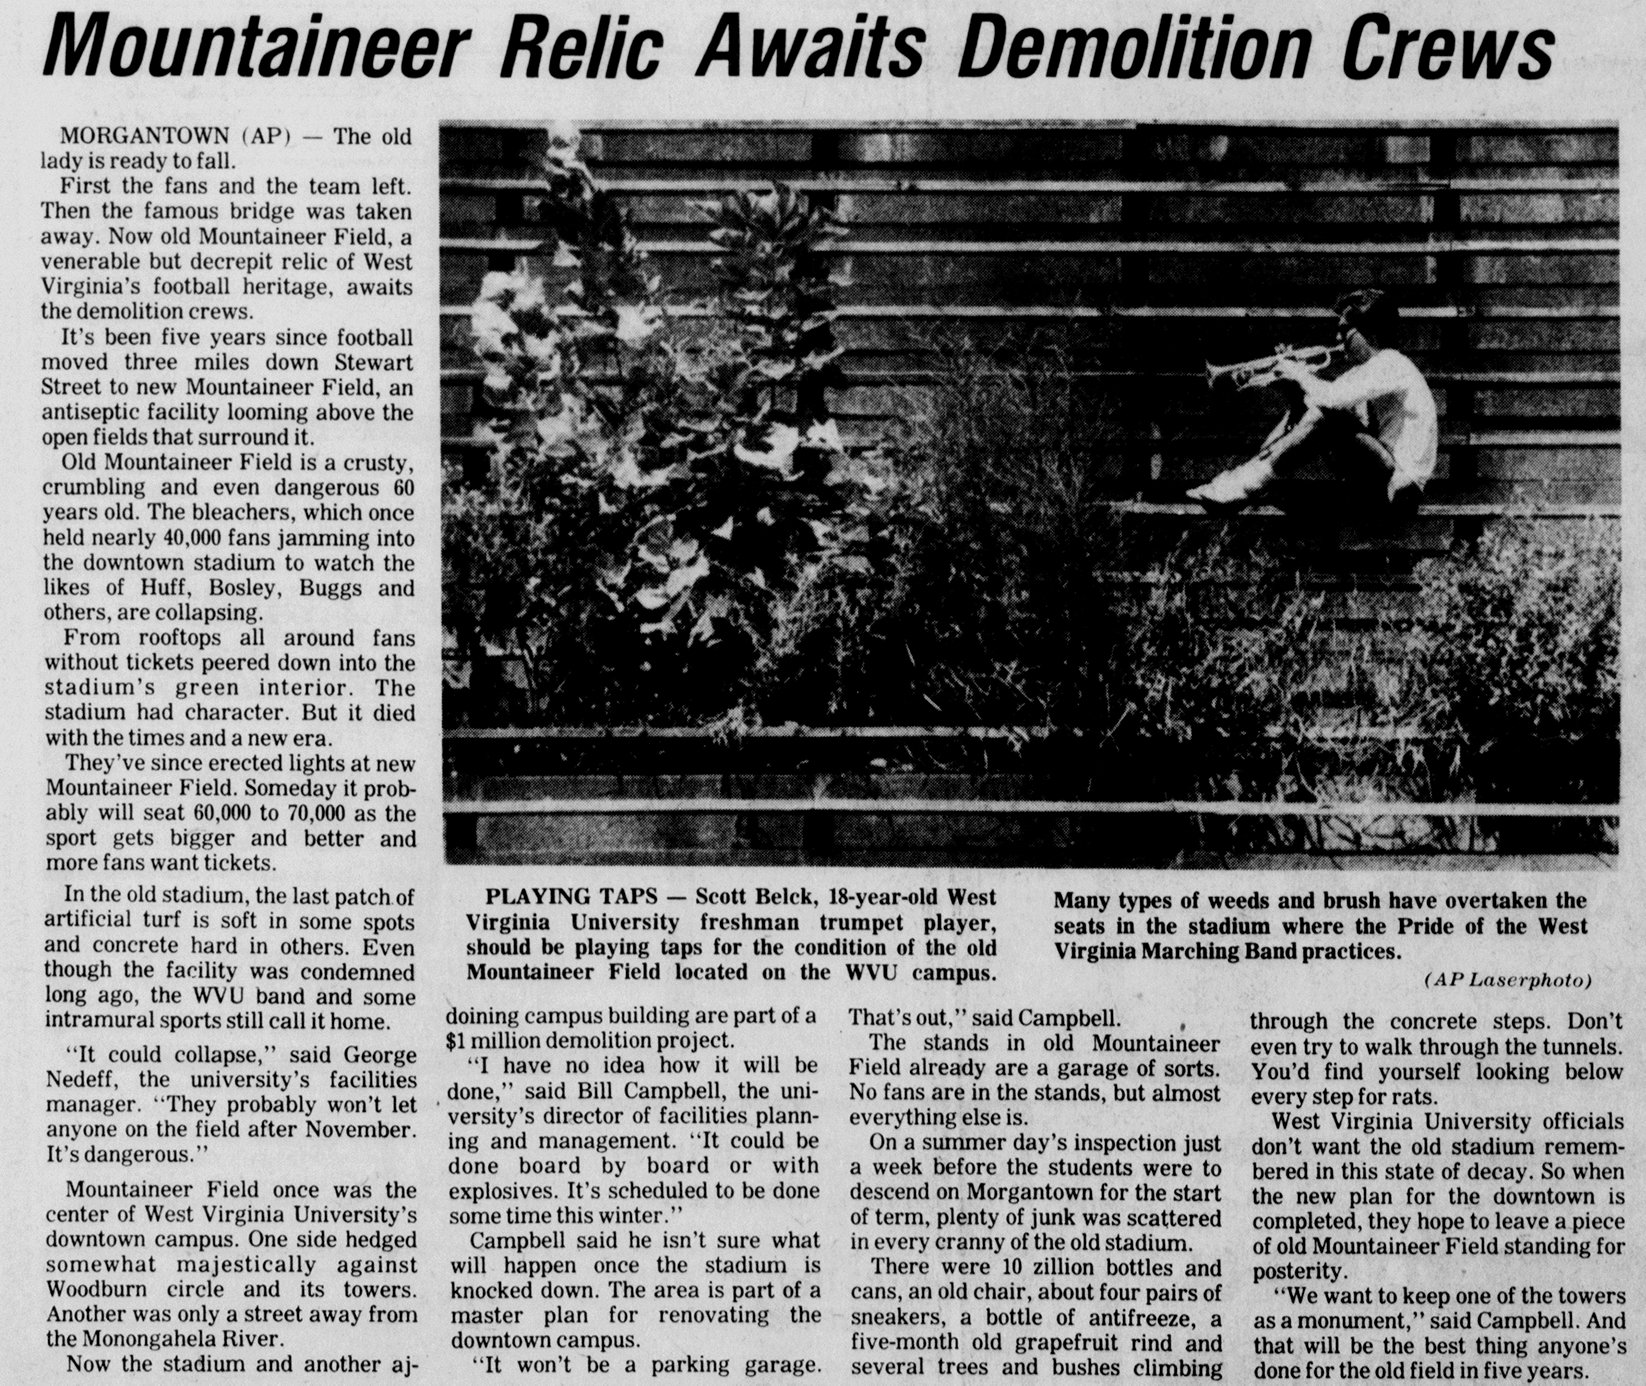 A clipping from the Bluefield Daily Telegraph of August 22, 1984 bemoans the state of the original Mountaineer Field as it awaits demolition.